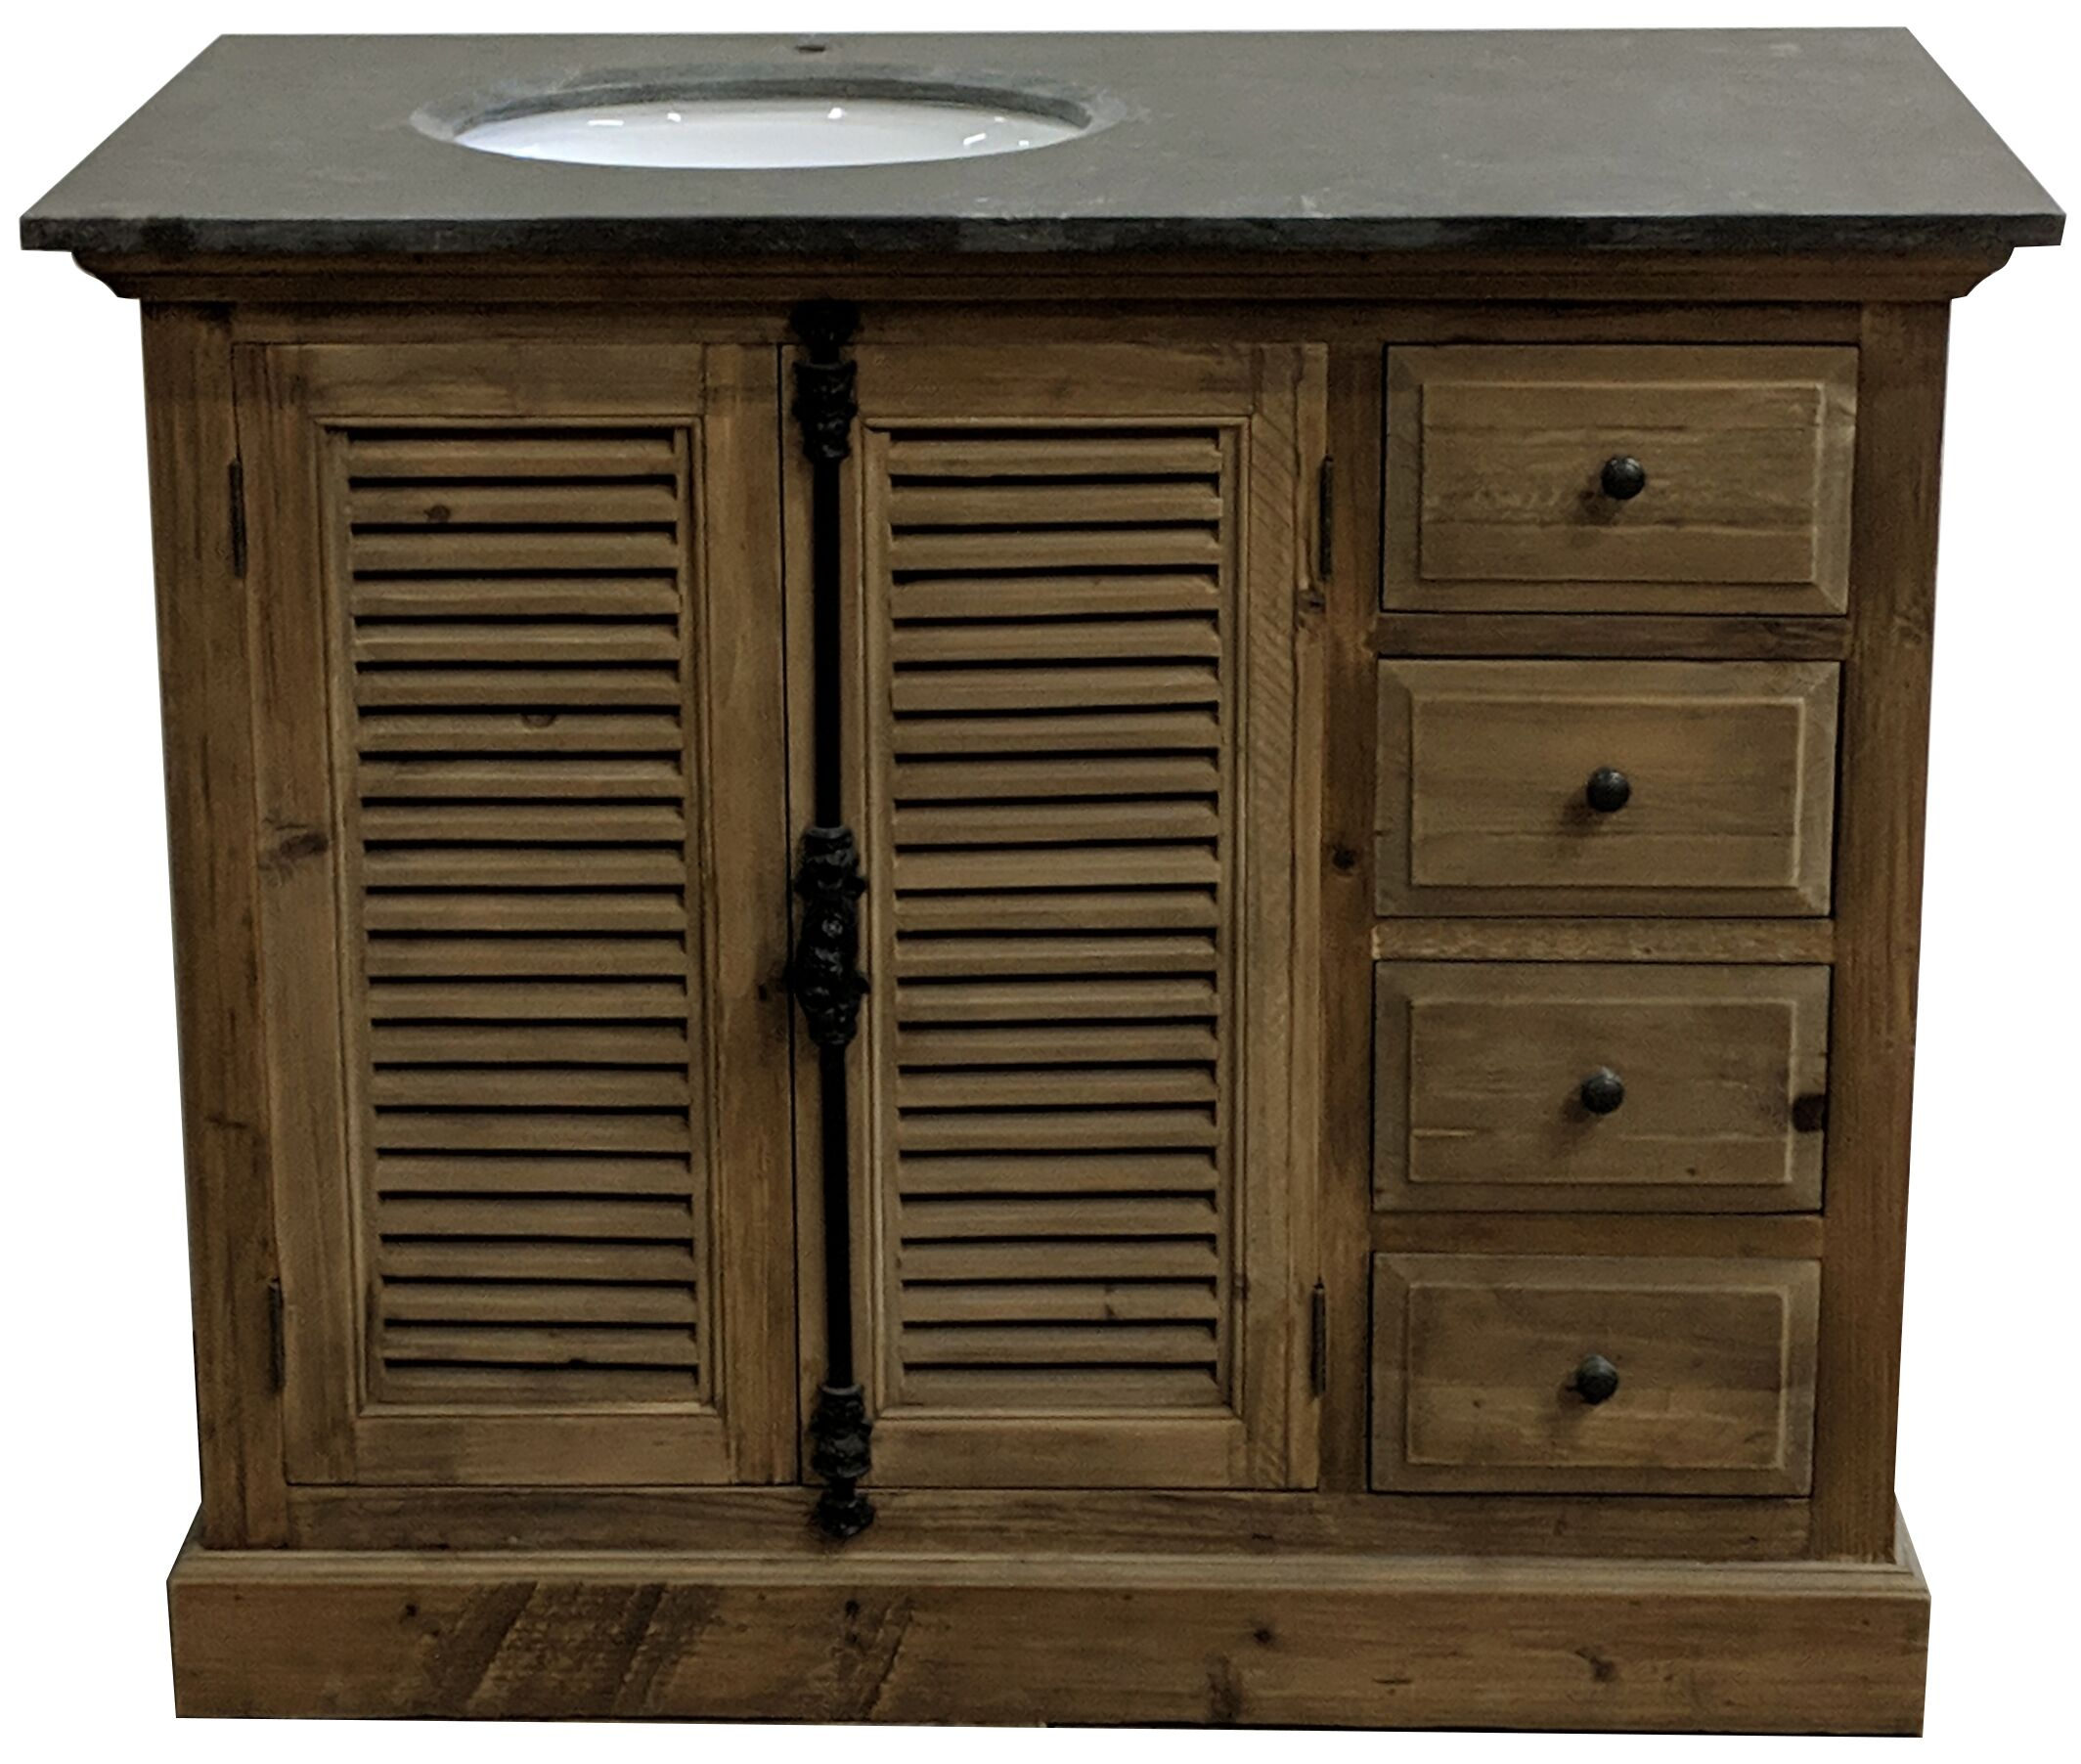 "43"" Handcrafted Reclaimed Pine Solid Wood Single Bath Vanity Natural Finish"